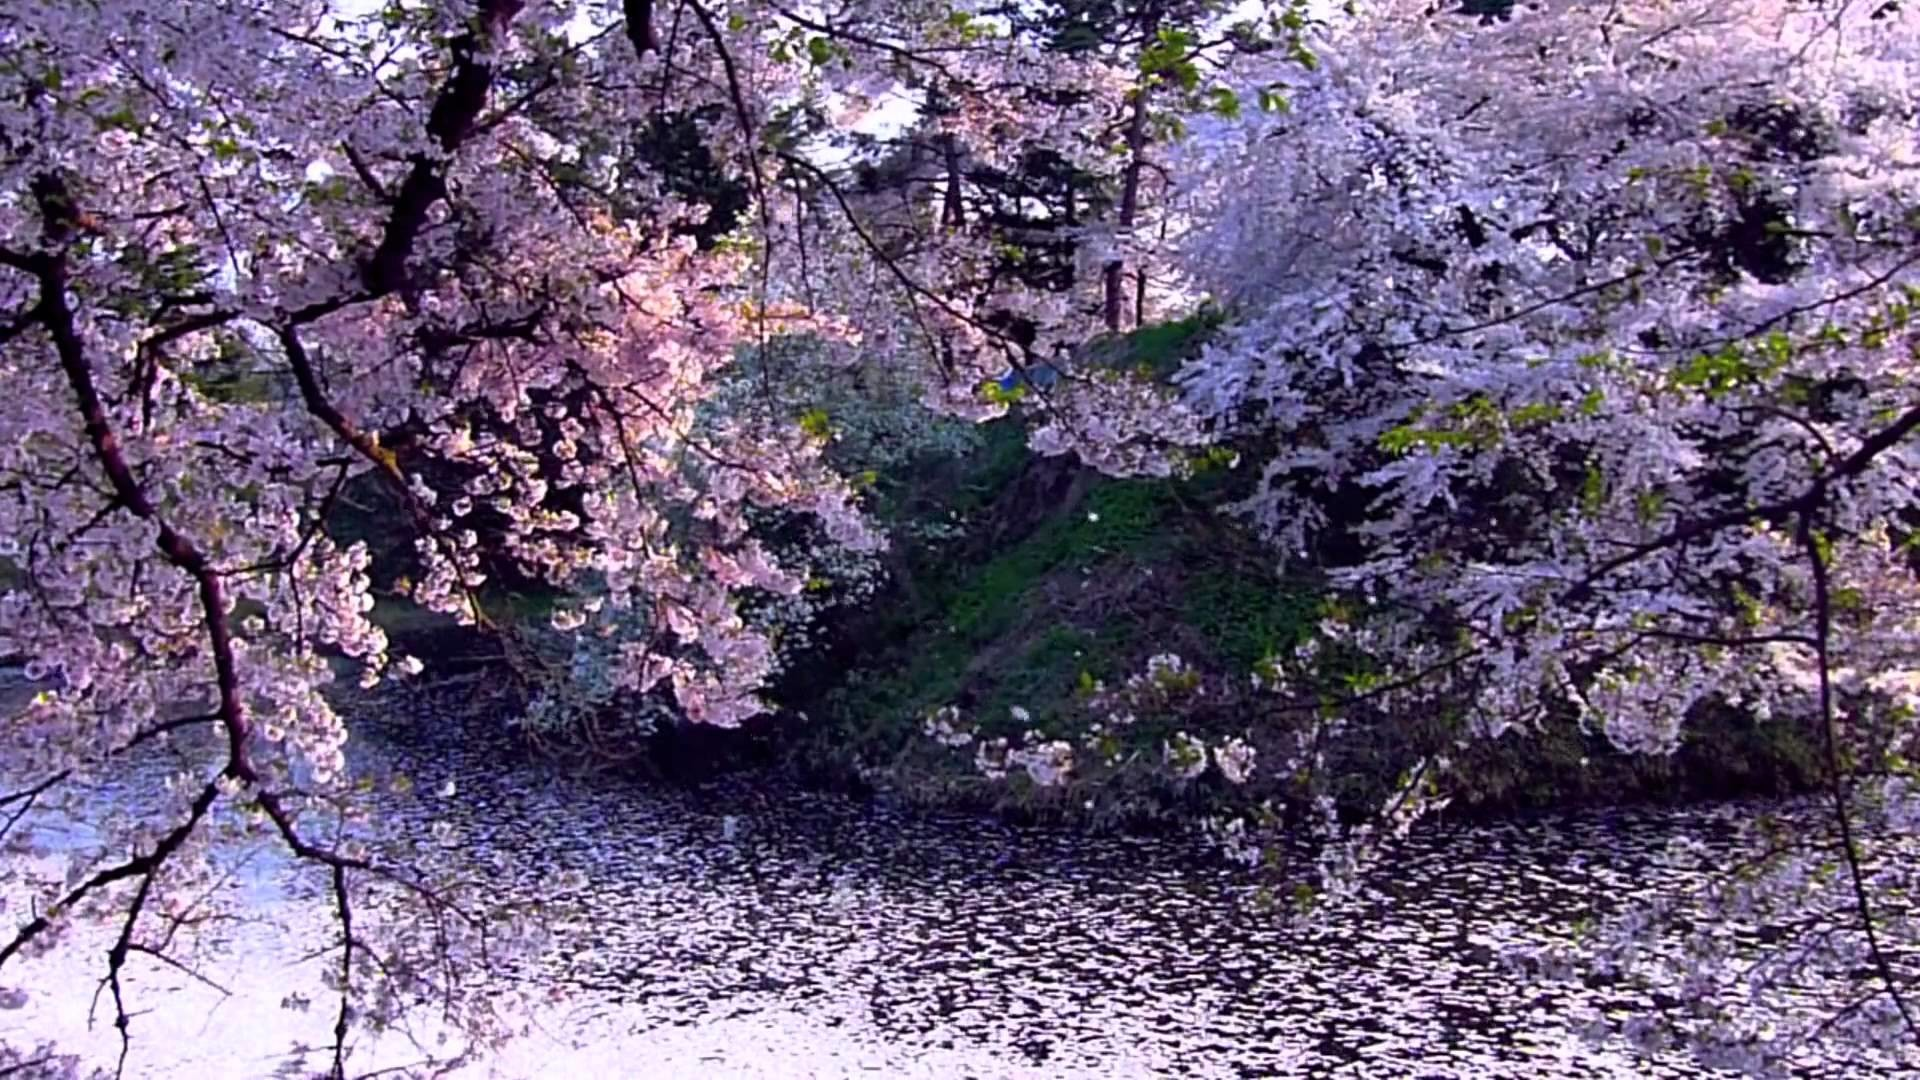 Spring Wallpaper Iphone Backgrounds Nature Cherry Blossoms